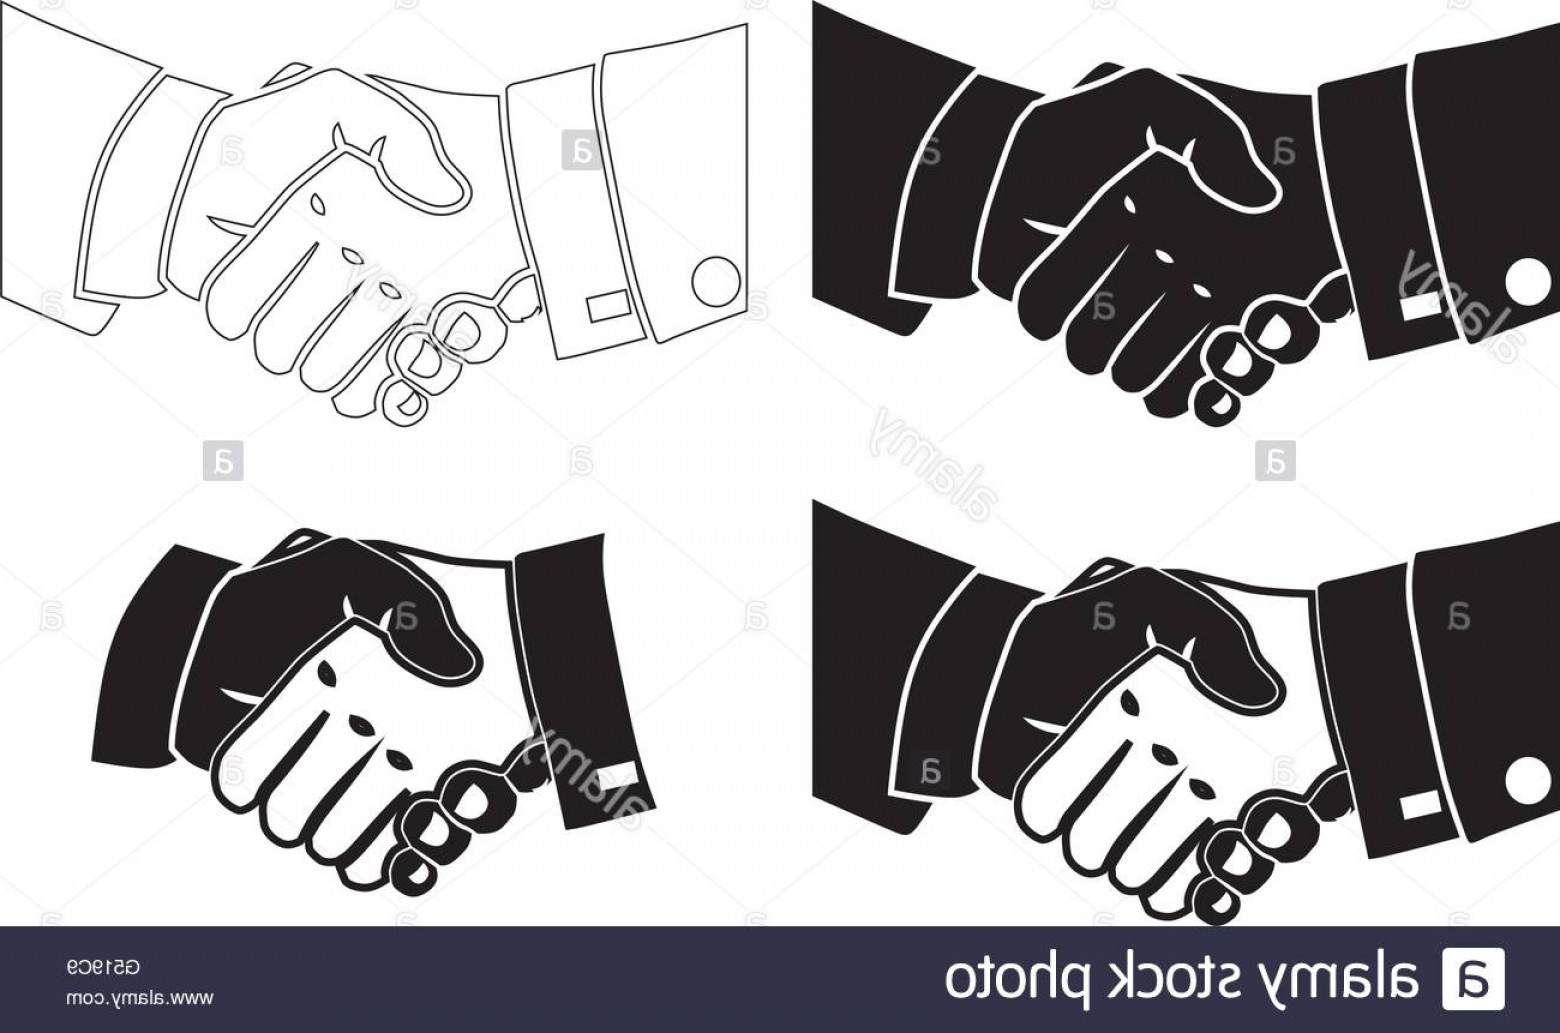 Handshake Clip Art Vector: Stock Photo Illustration Icon Vector Shake Hands For The Creative Use In Graphic